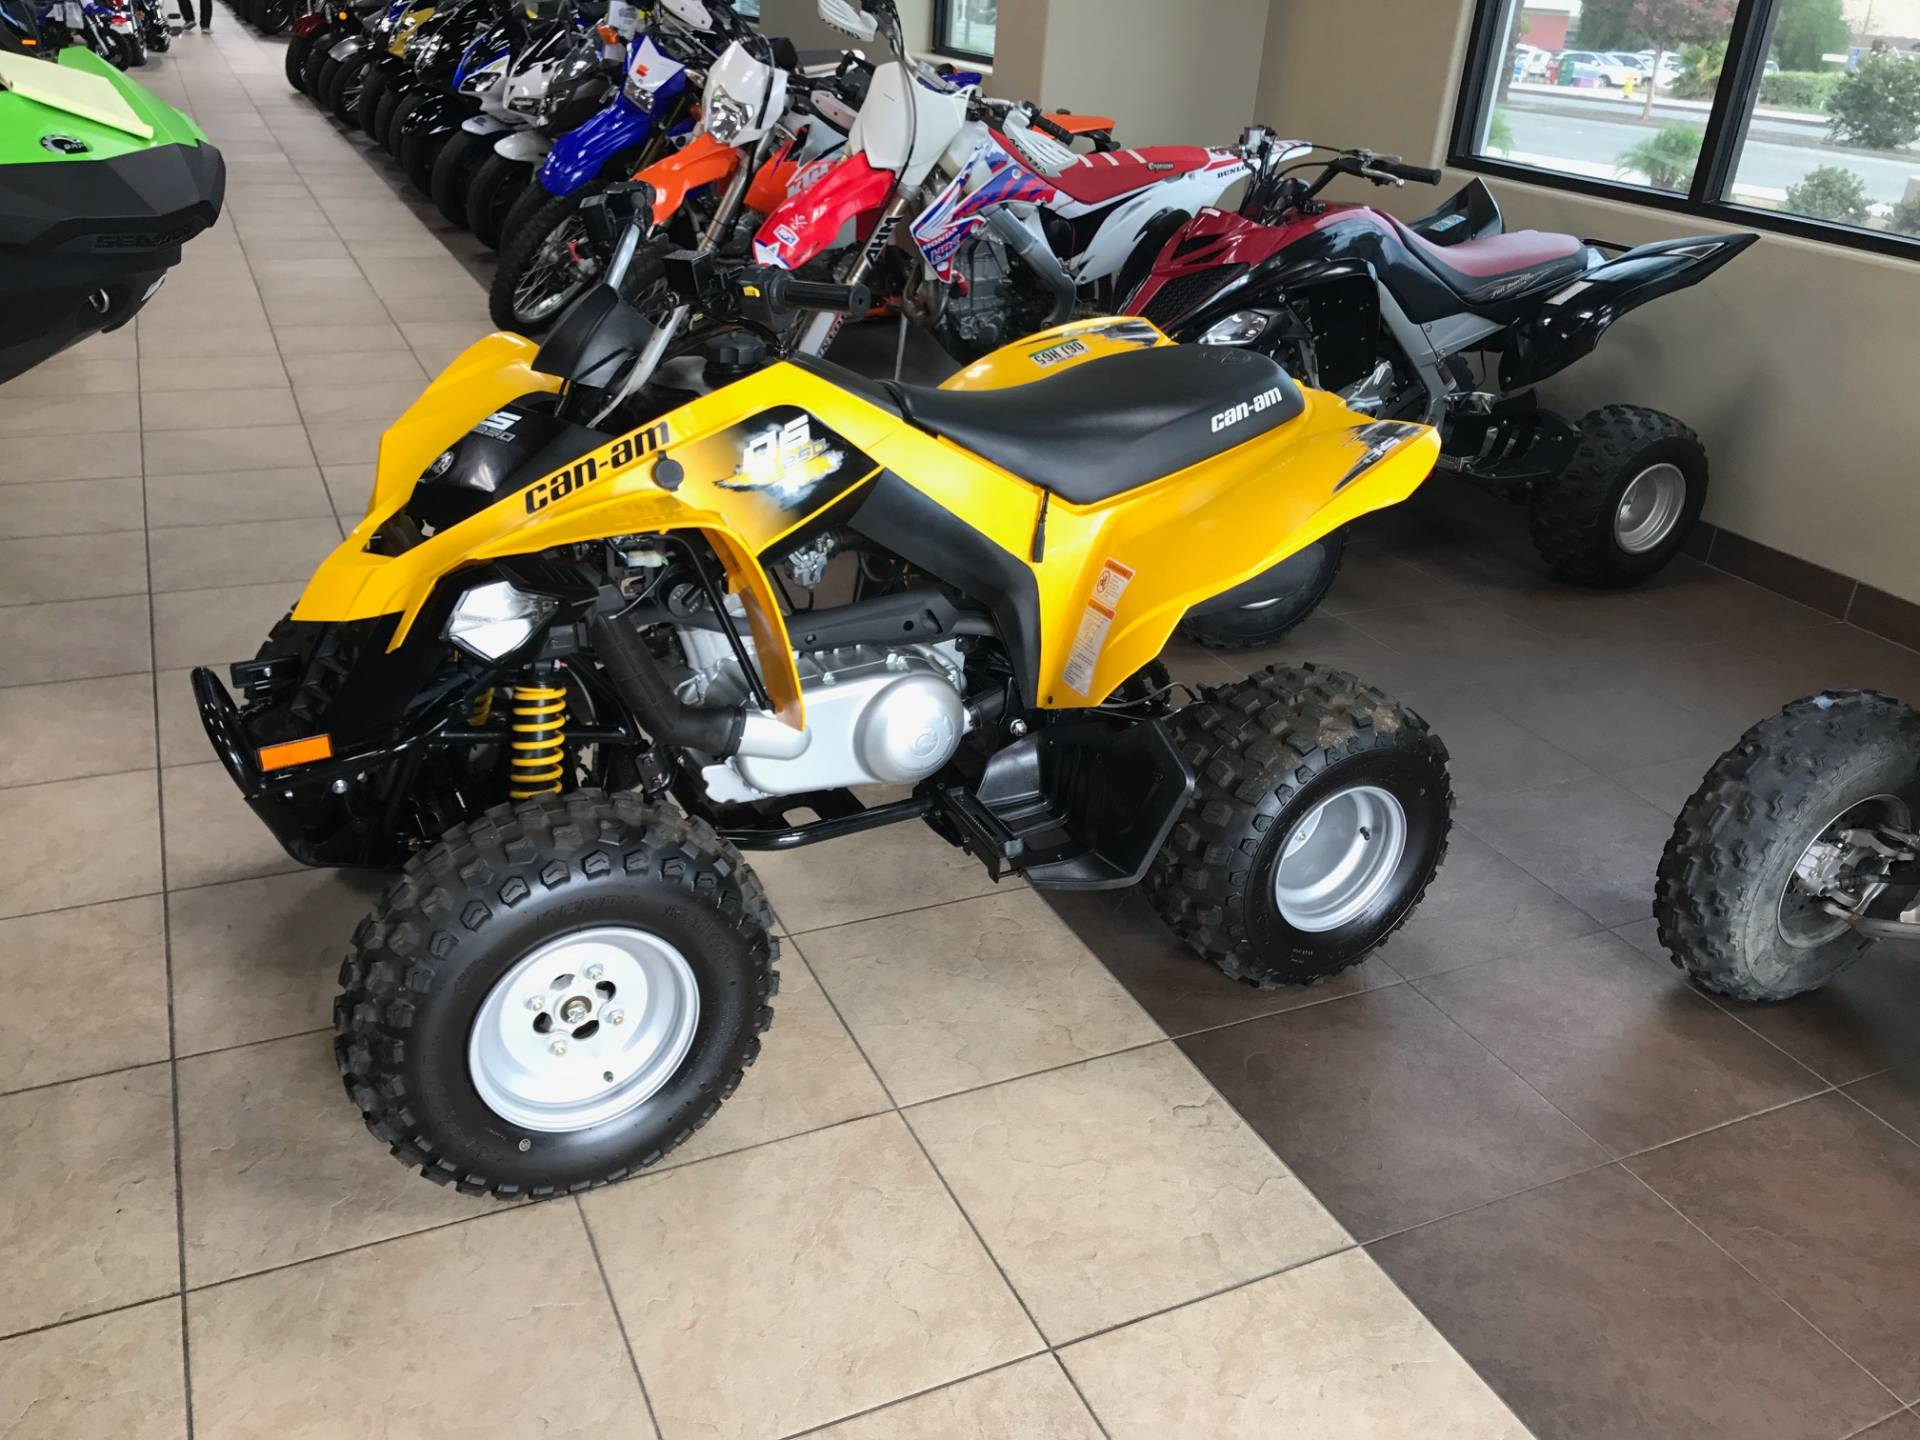 2017 Can-Am DS 250 for sale 53052